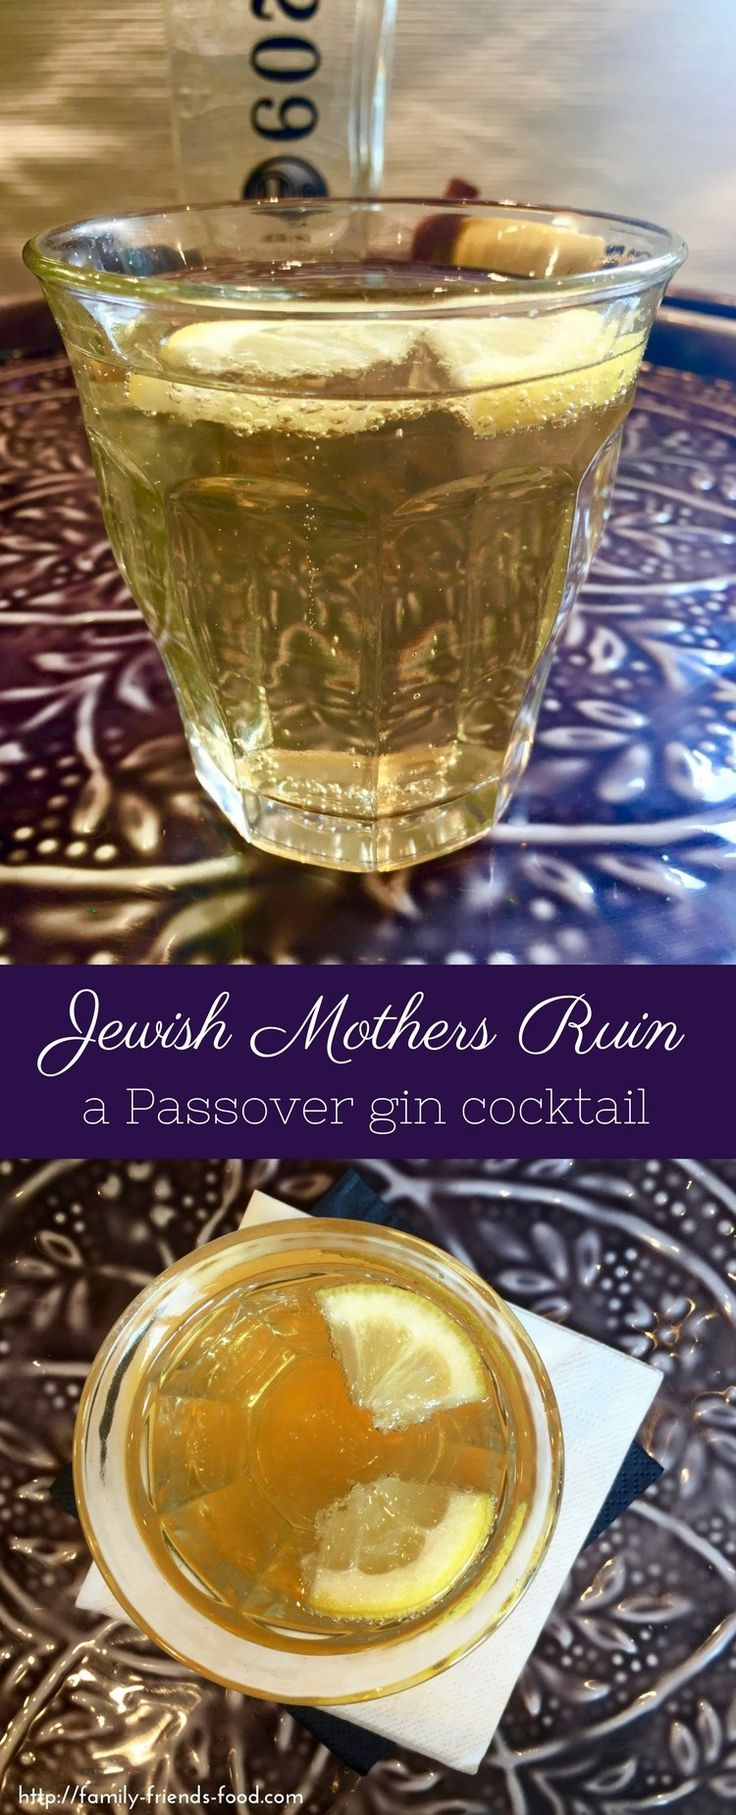 There really is a KOSHER FOR PASSOVER GIN! Time to mix yourself a well-earned cocktail. Jewish Mothers Ruin is the perfect tipple to relax with this Pesach. #passover #pesach #jewish #kosher